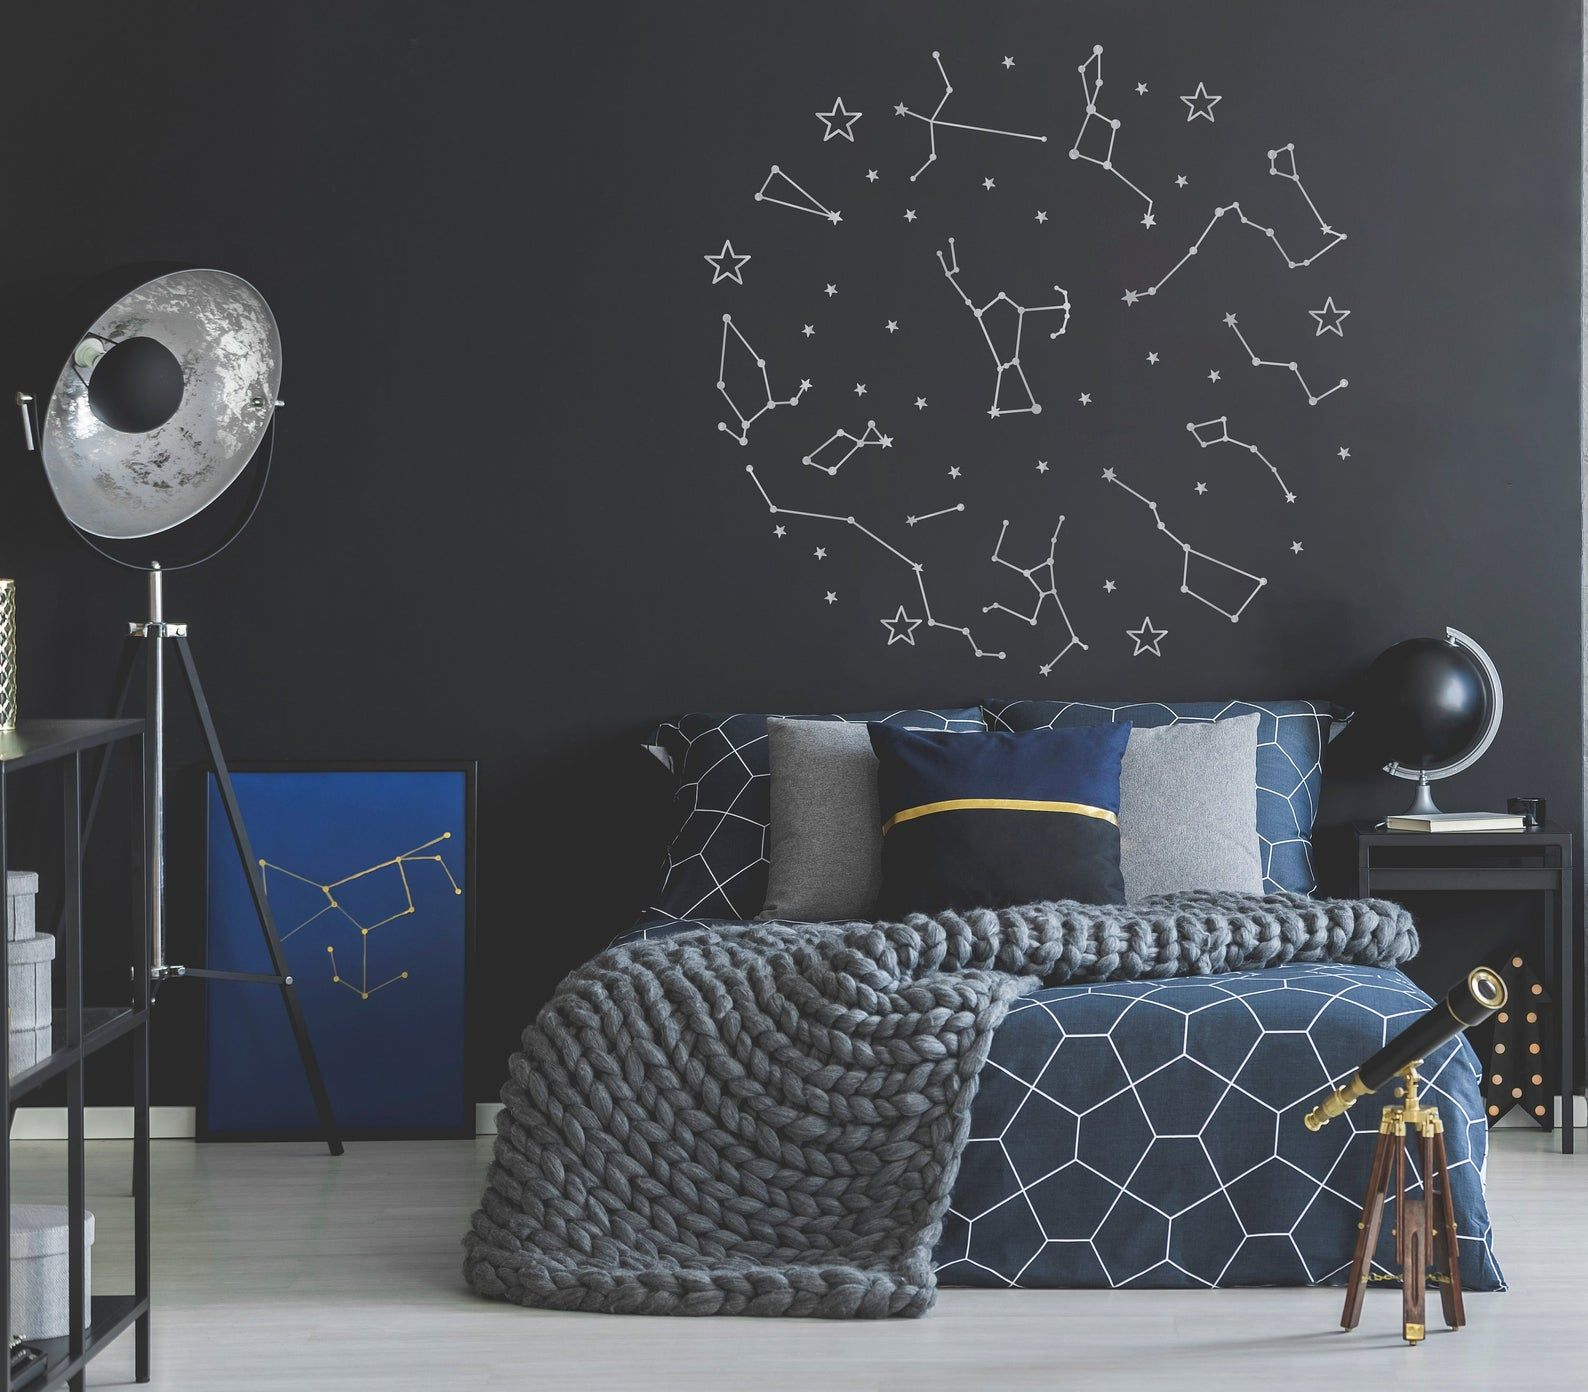 Constellation Wall Decals Nursery Wall Decal Outer Space Etsy Outer Space Room Stylish Bedroom Design Meditation Room Decor